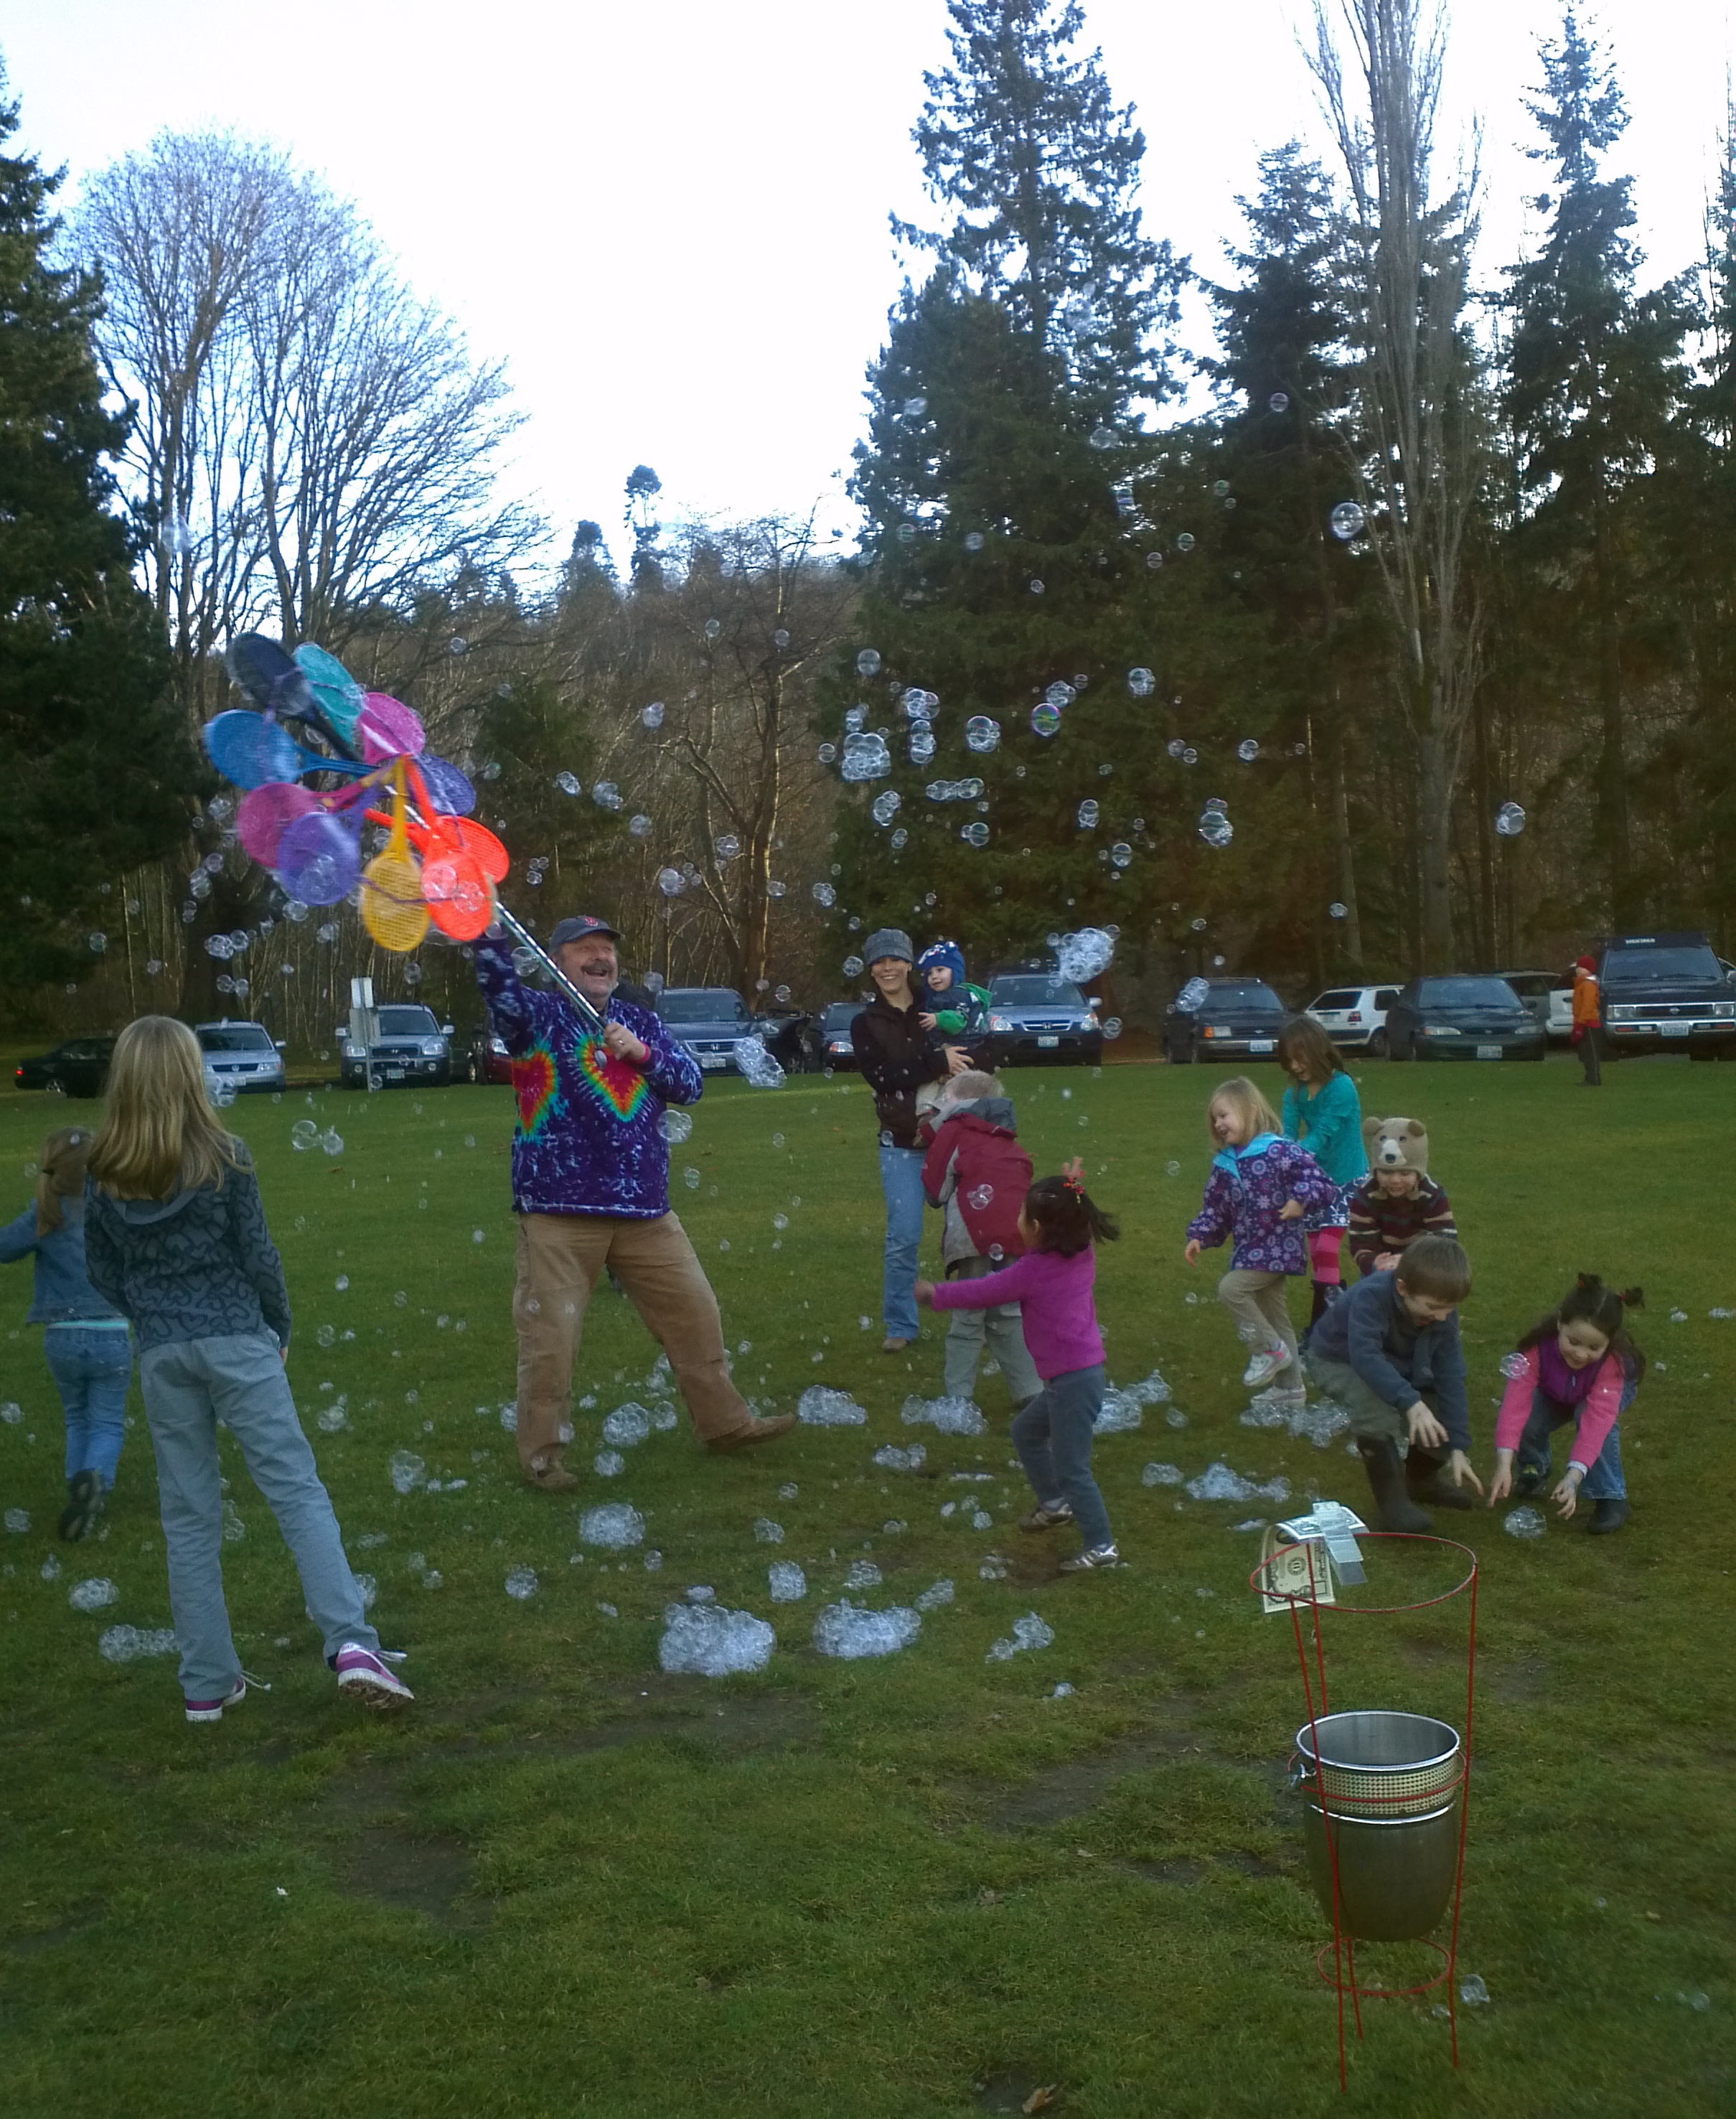 The Bubble Man at play in Carkeek Park, New Years Day 2012.